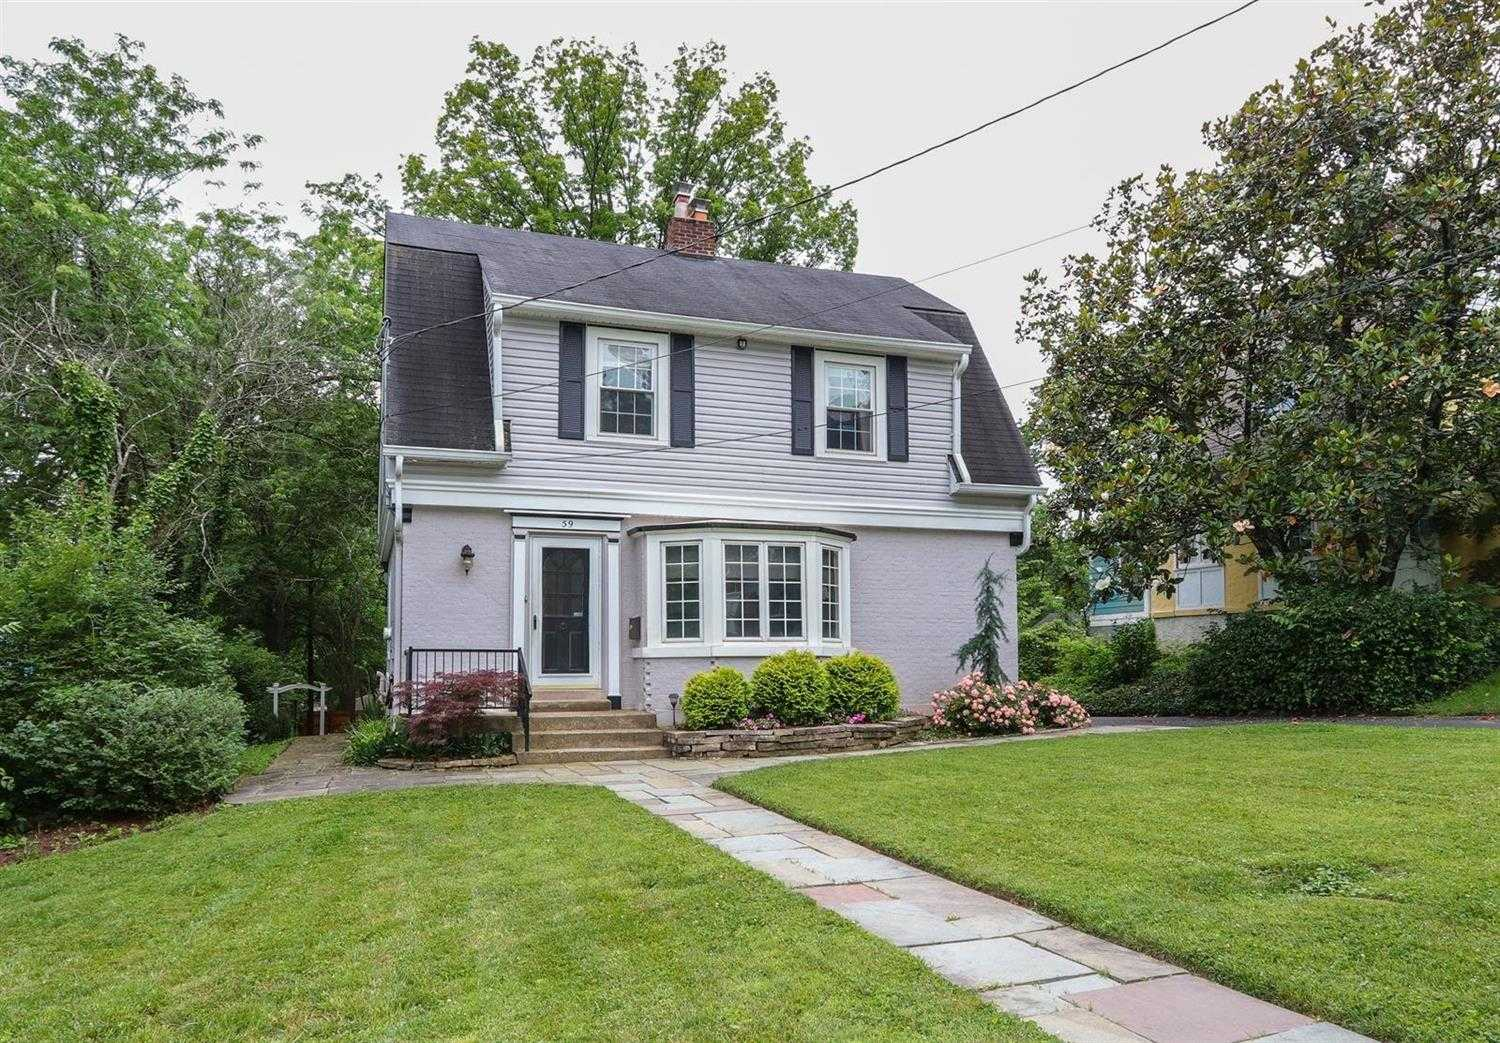 59 Central Terrace Wyoming,OH 45215 1624422